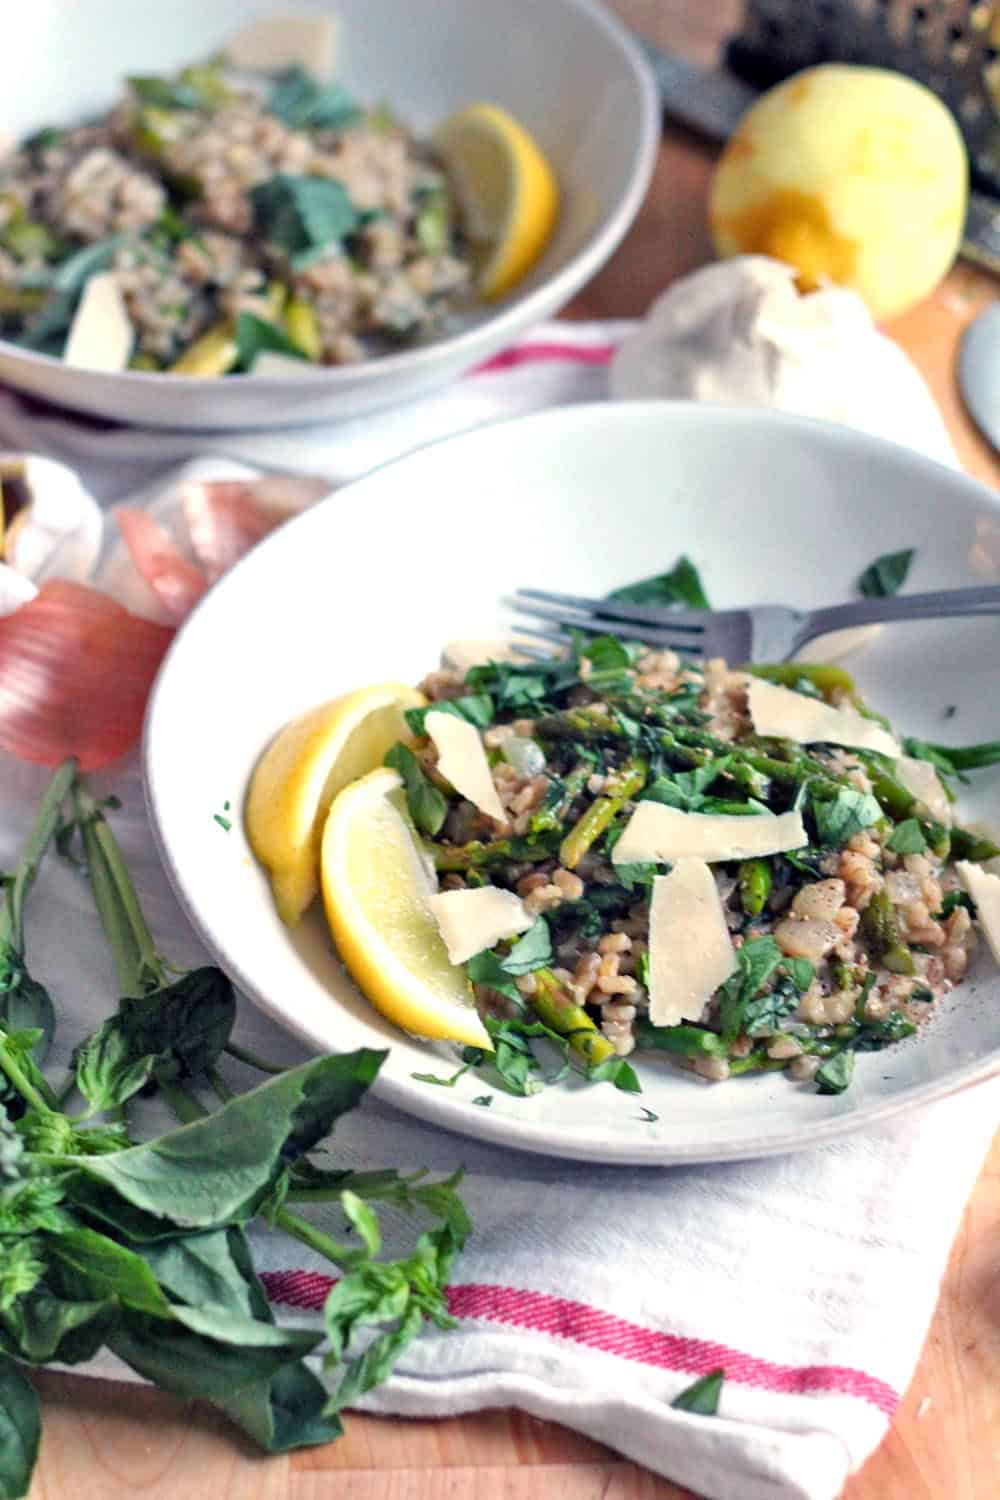 This Barley Risotto with Asparagus, Basil, and Lemon is a bright and healthy spring dish- made with 100% whole grains and a special trick that cuts the cooking time of barley in half!